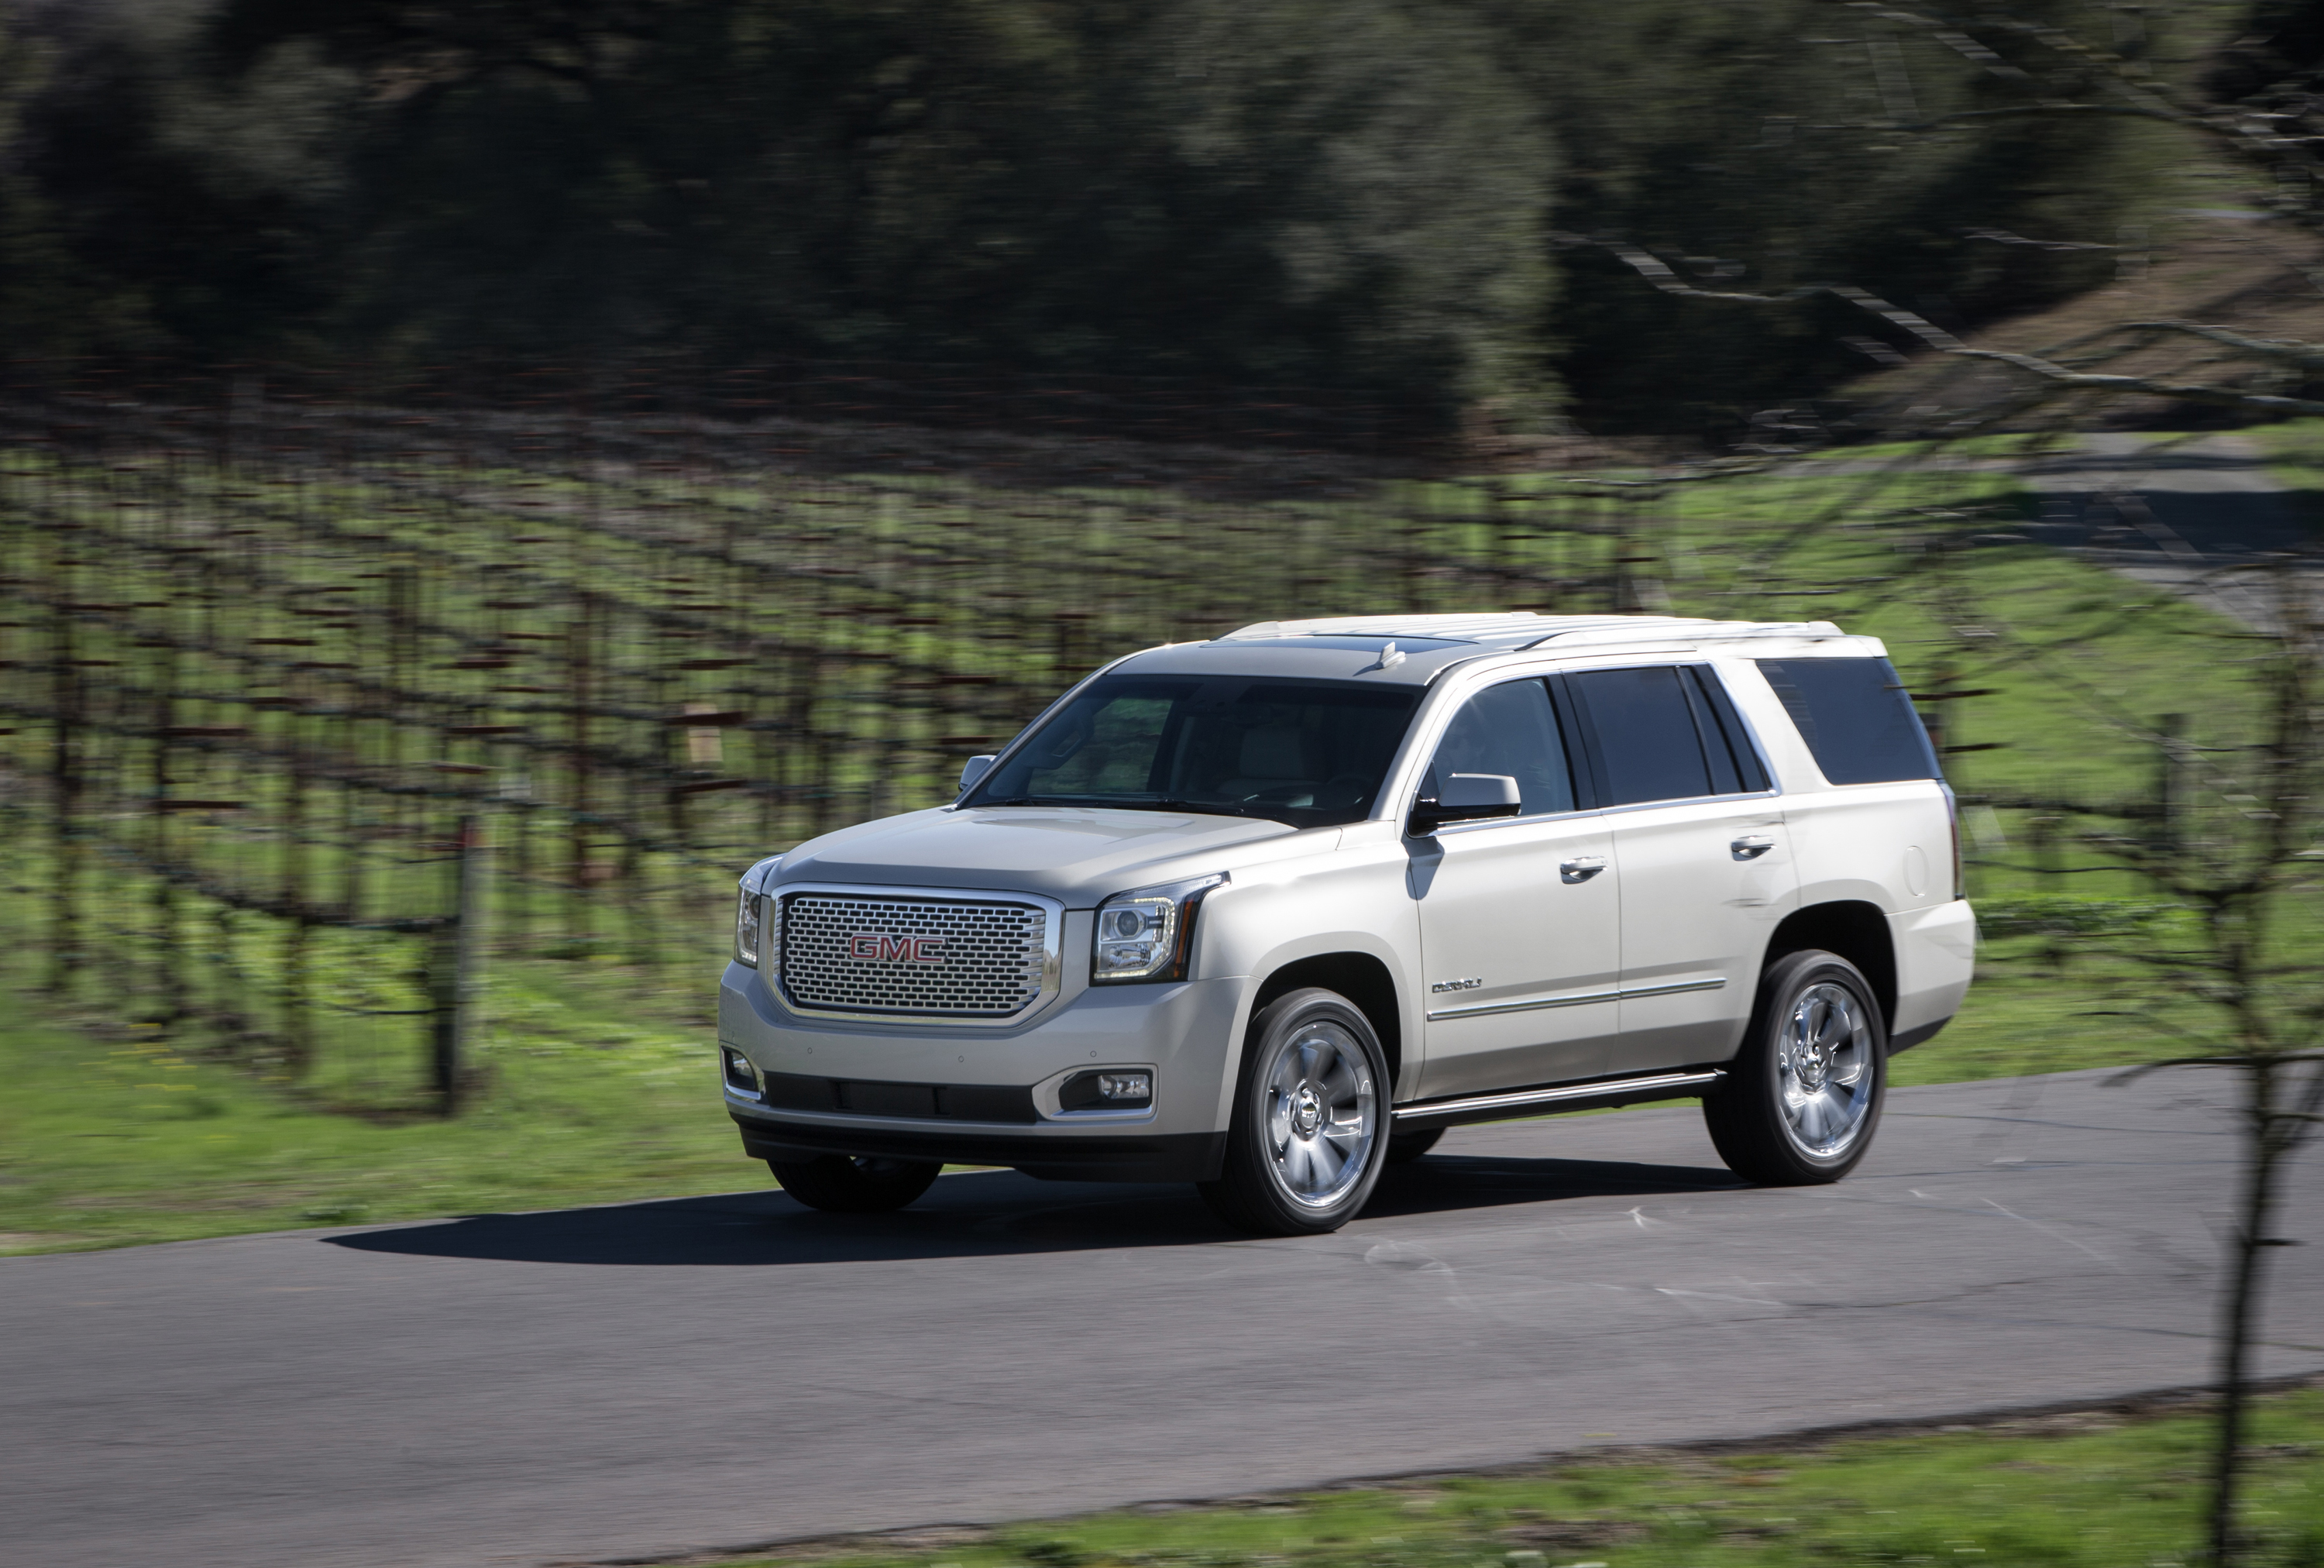 used xl joliet in yukon il vehiclesearchresults new denali photo for sale gmc vehicle